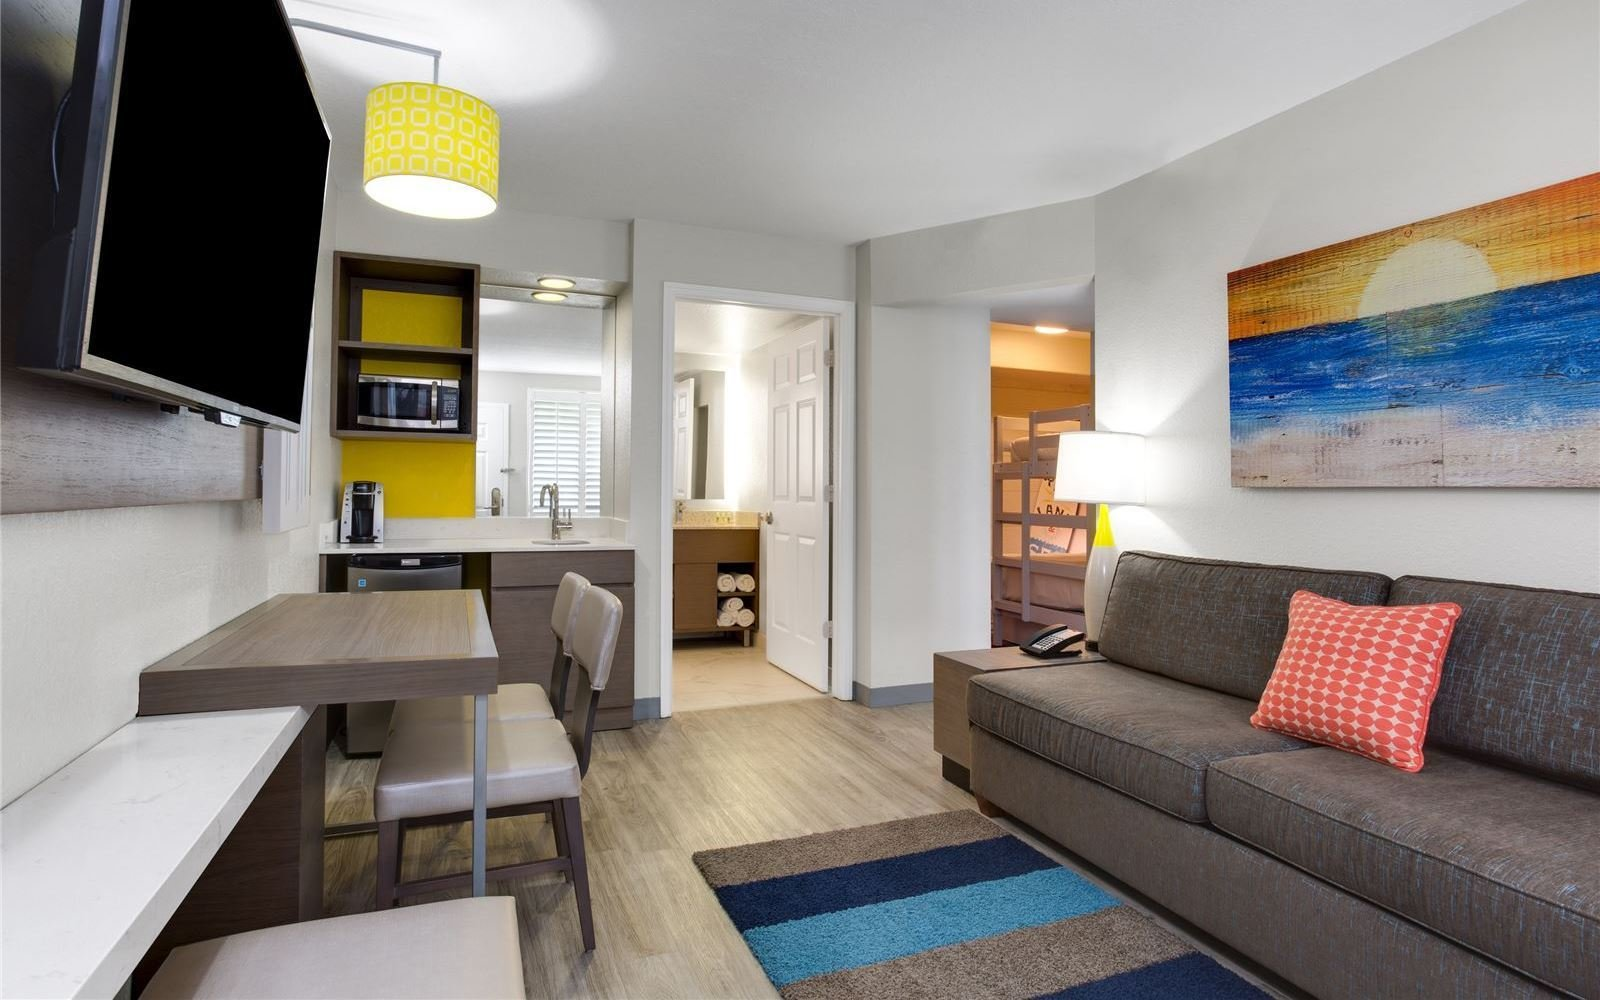 Best Orlando Suites Resort Lodging Holiday Inn Resort Orlando With Pictures